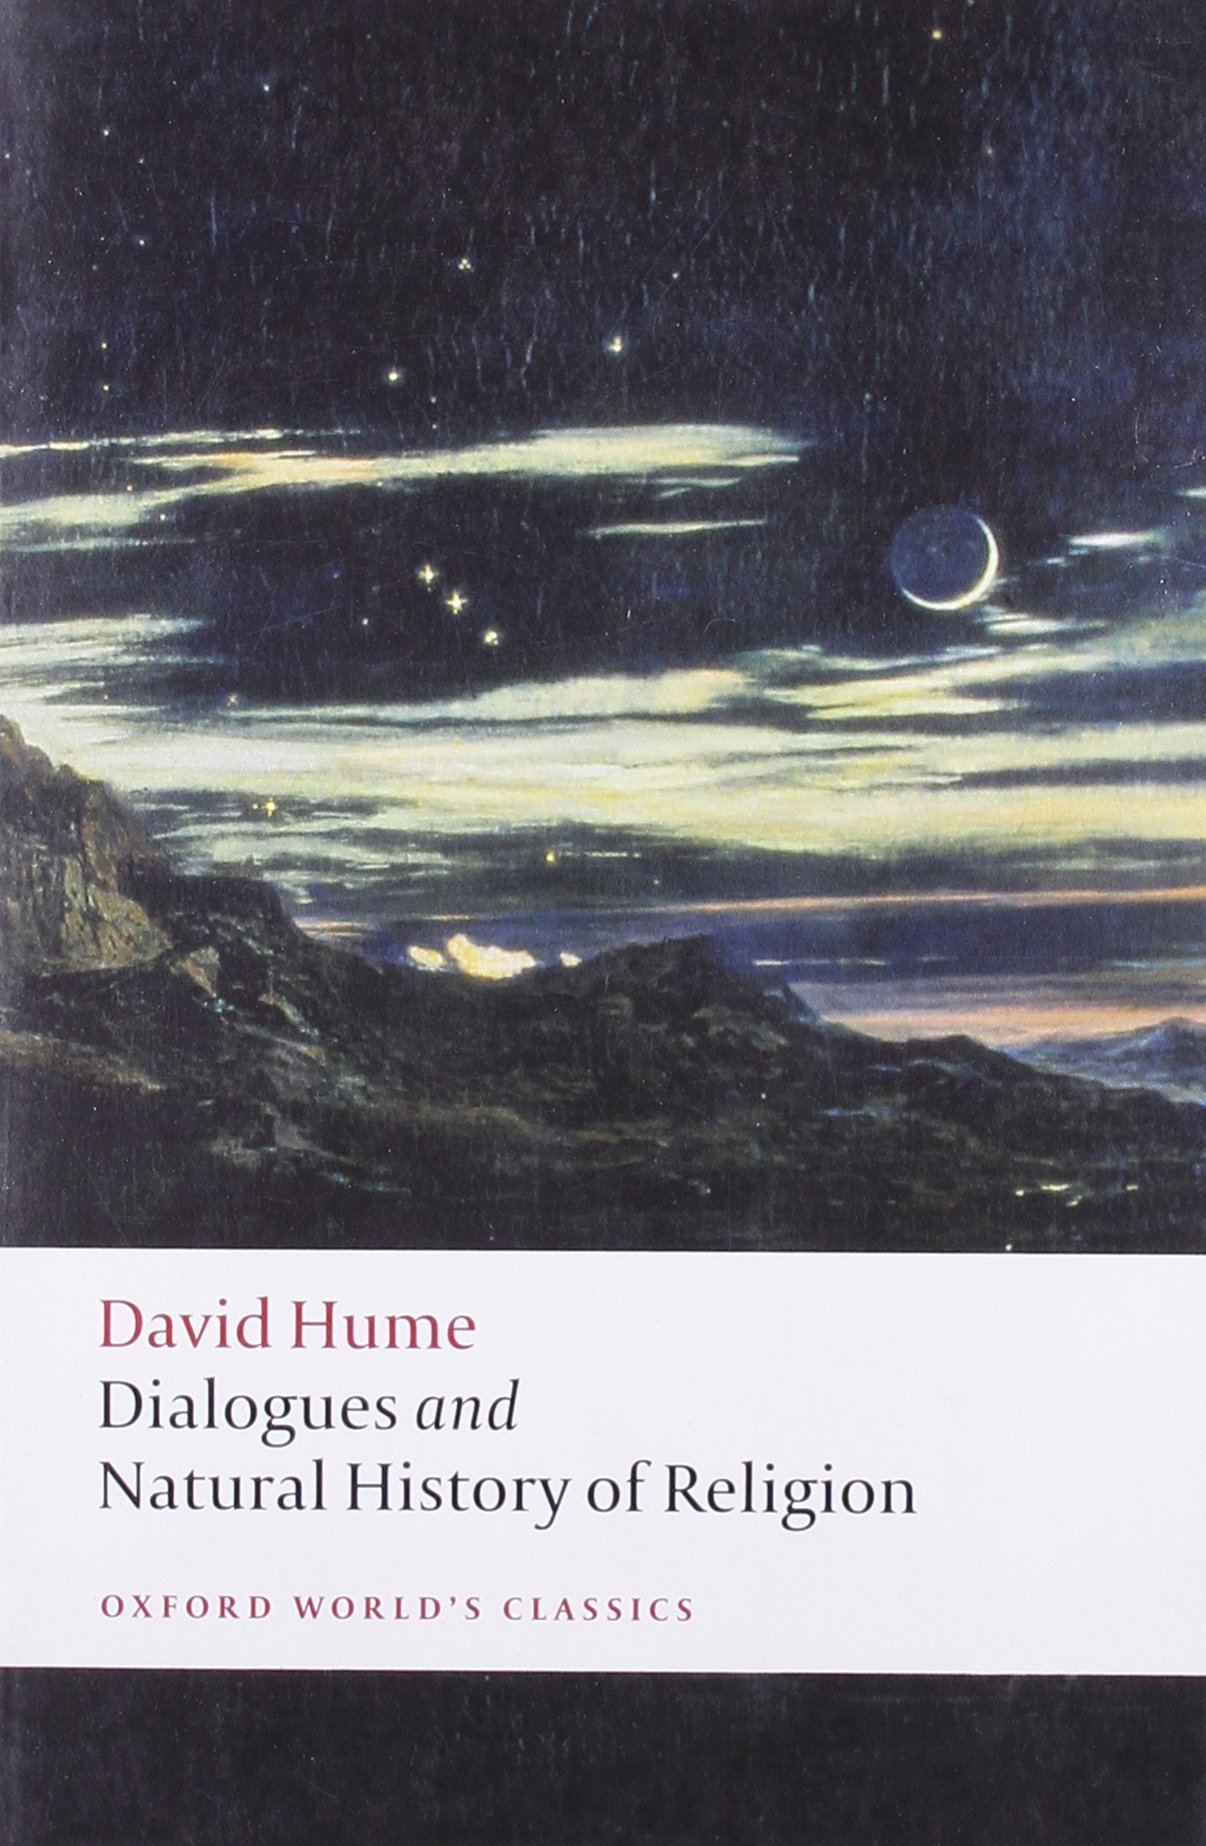 dialogues concerning natural religion and the natural history of dialogues concerning natural religion and the natural history of religion oxford world s classics co uk david hume j c a gaskin